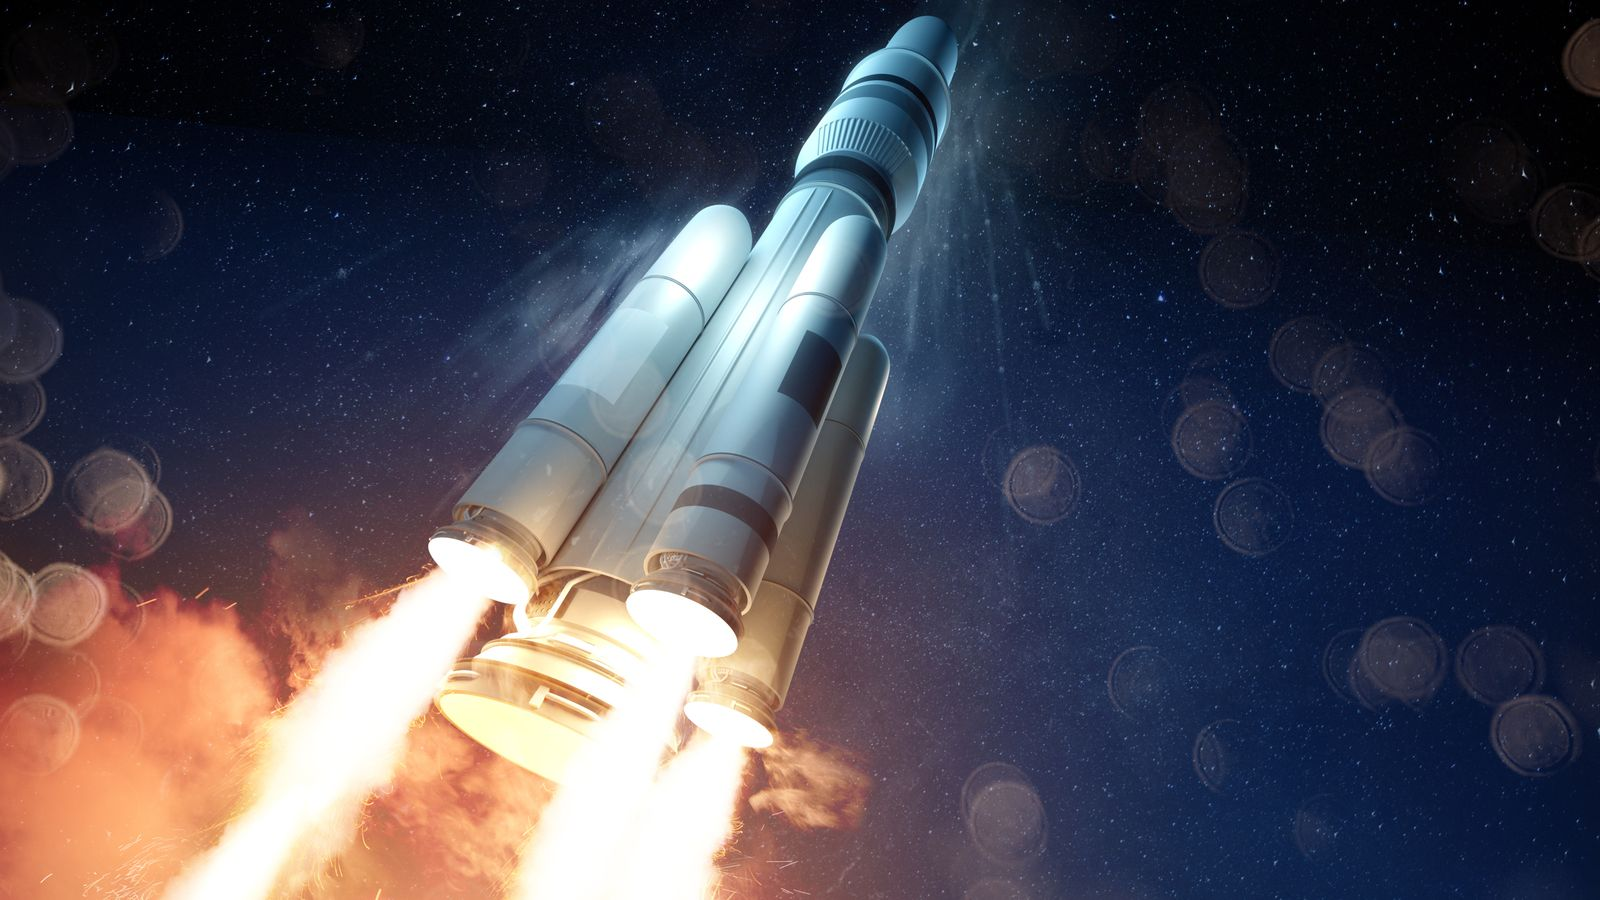 The Department of Transport has announced new regulations to allow space flights to take place from the UK